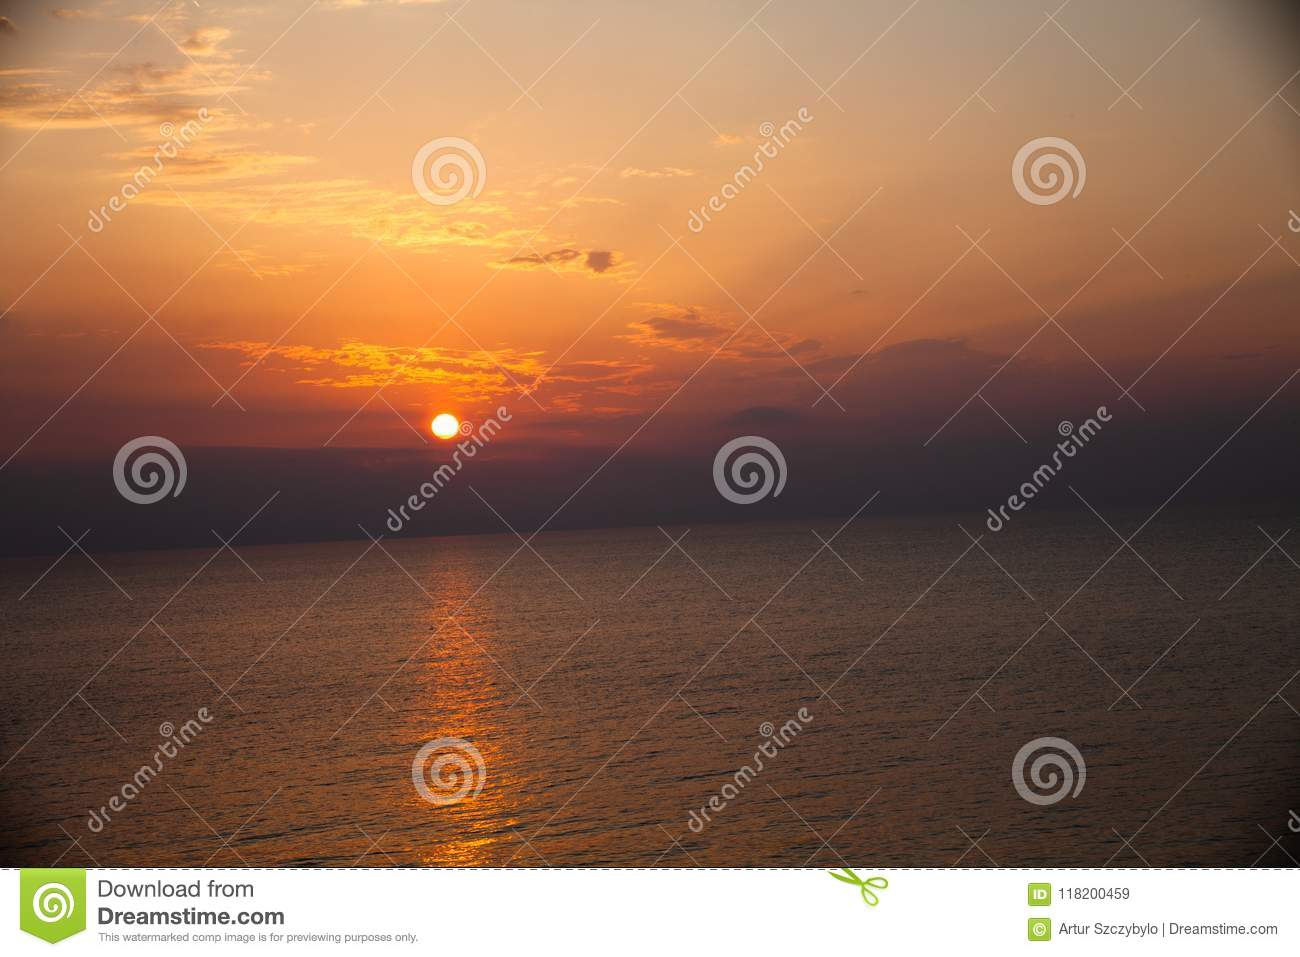 Sunset at the beach with some clouds in the sky. Blue and pink shades with dark clouds. Quiet place. Relaxing scene of beaches. Be